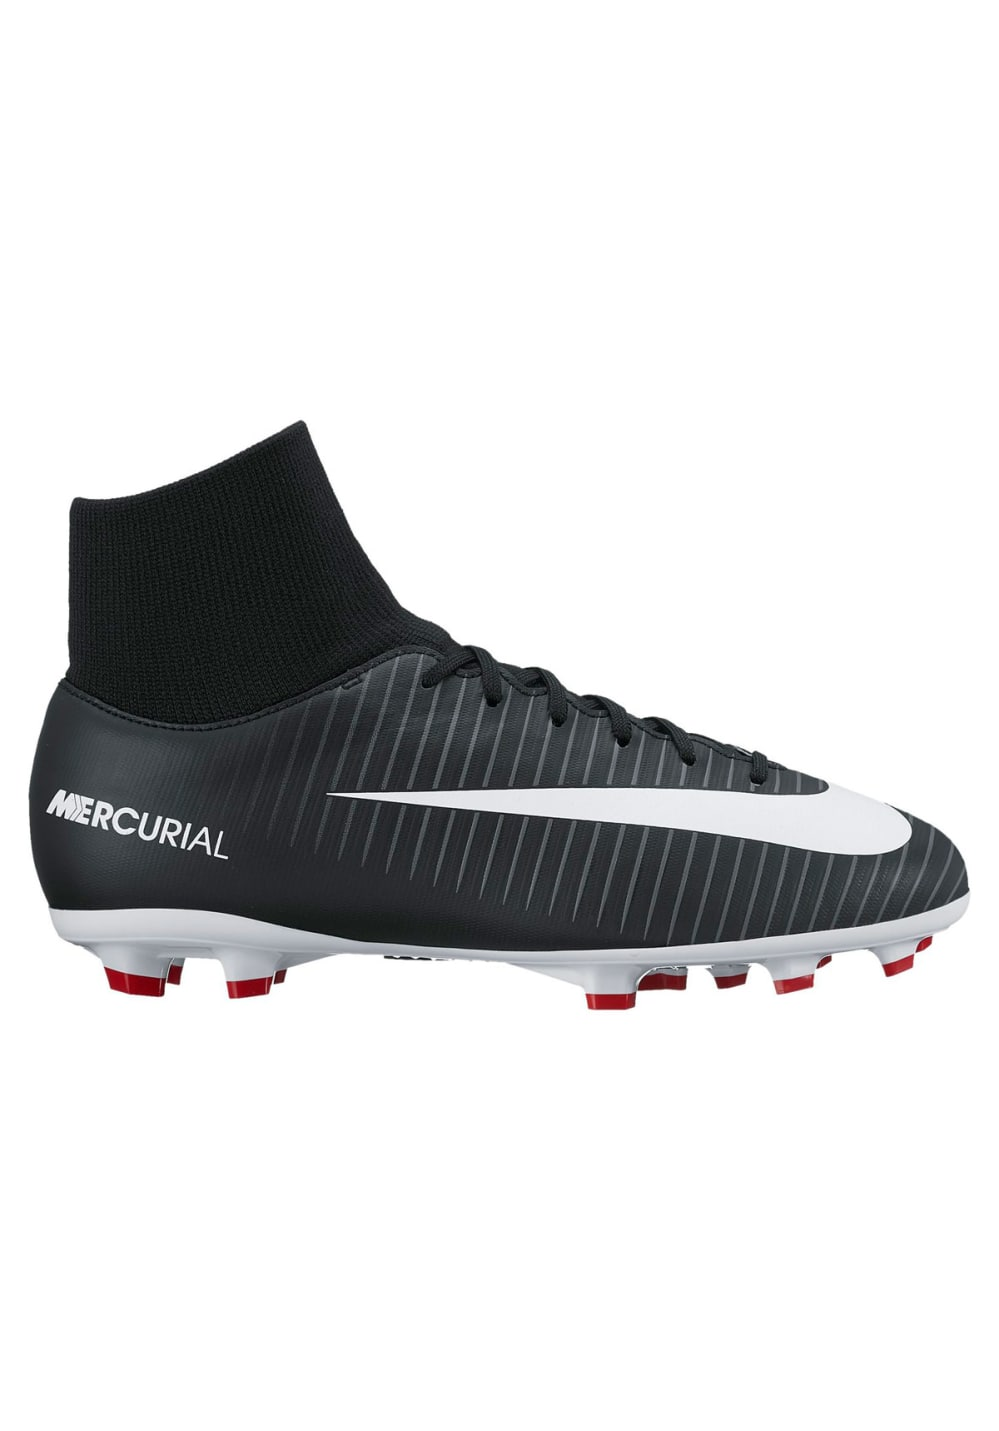 95e28f62e Next. Nike. Jr. Mercurial Victory VI Dynamic Fit FG - Football Shoes